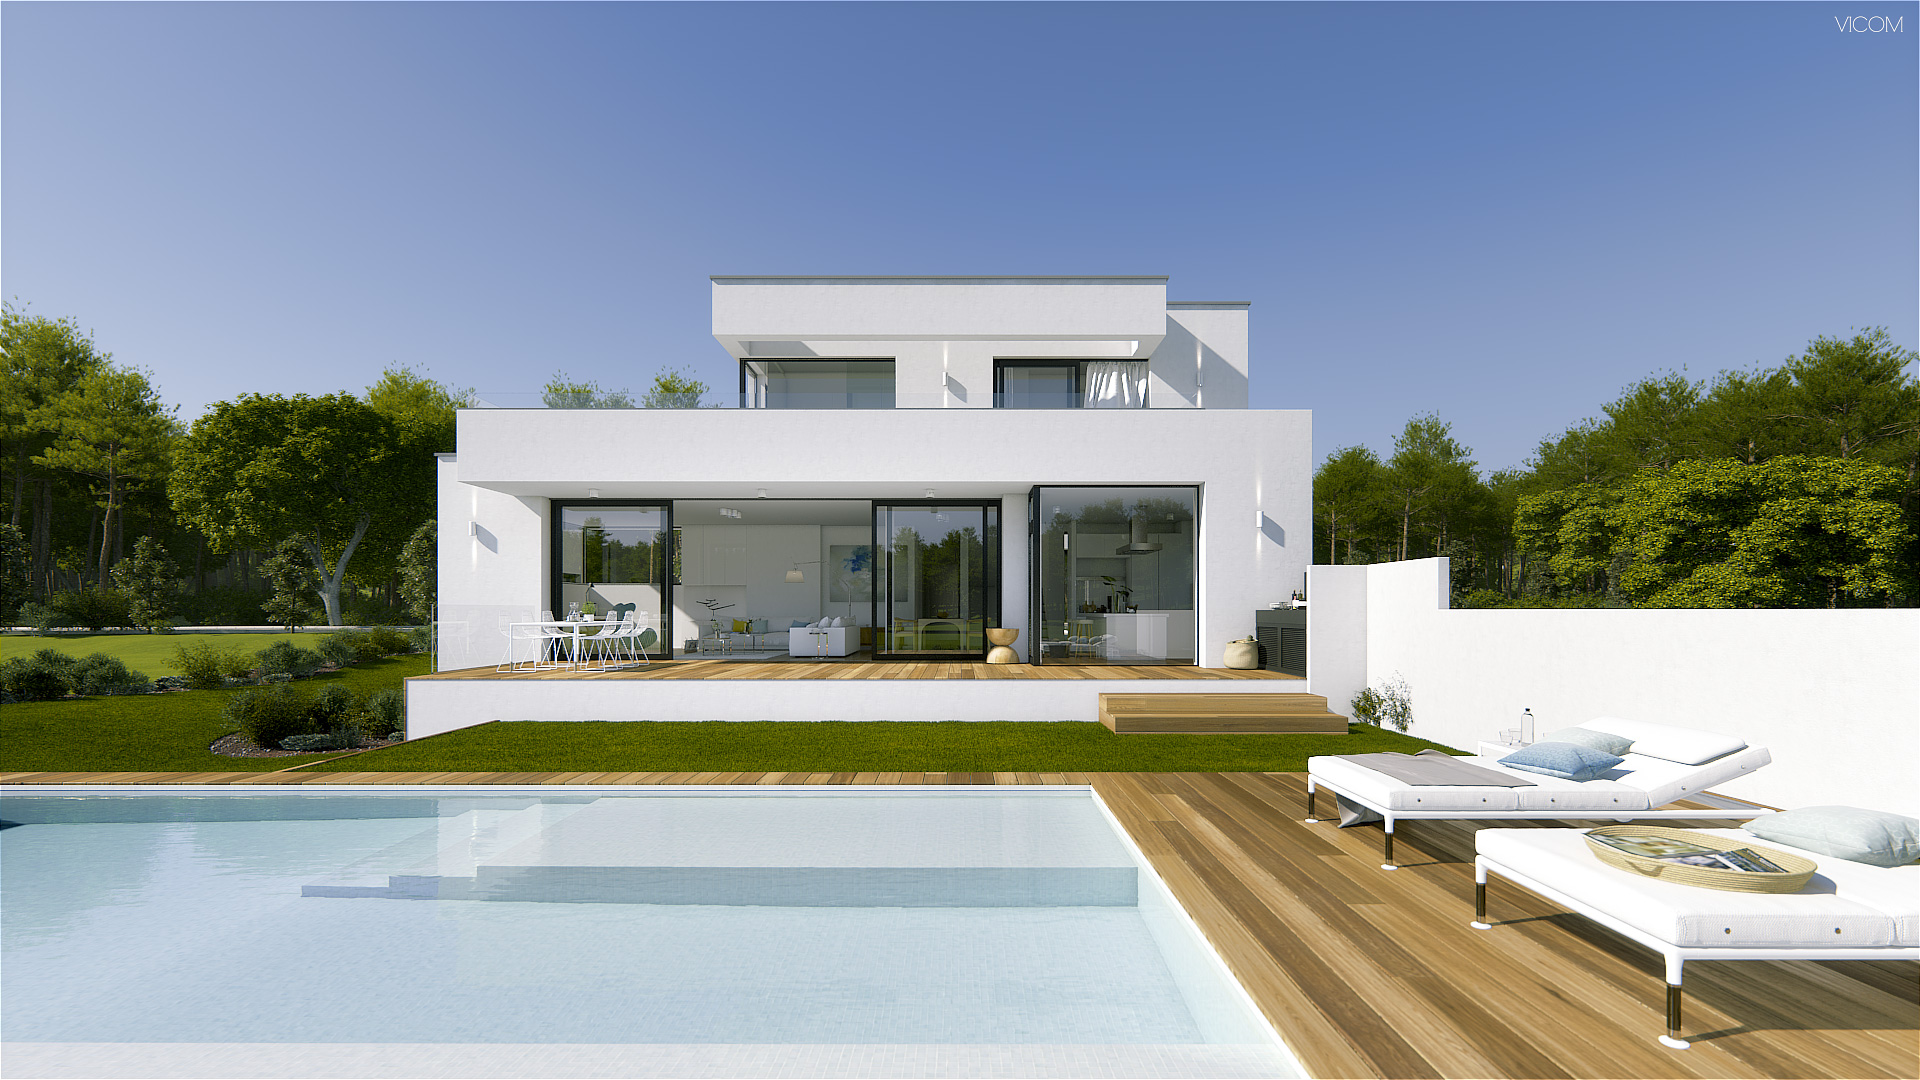 Single Family Home for Sale at Bright designer villa Other Cities Baix Emporda, Barcelona 17001 Spain